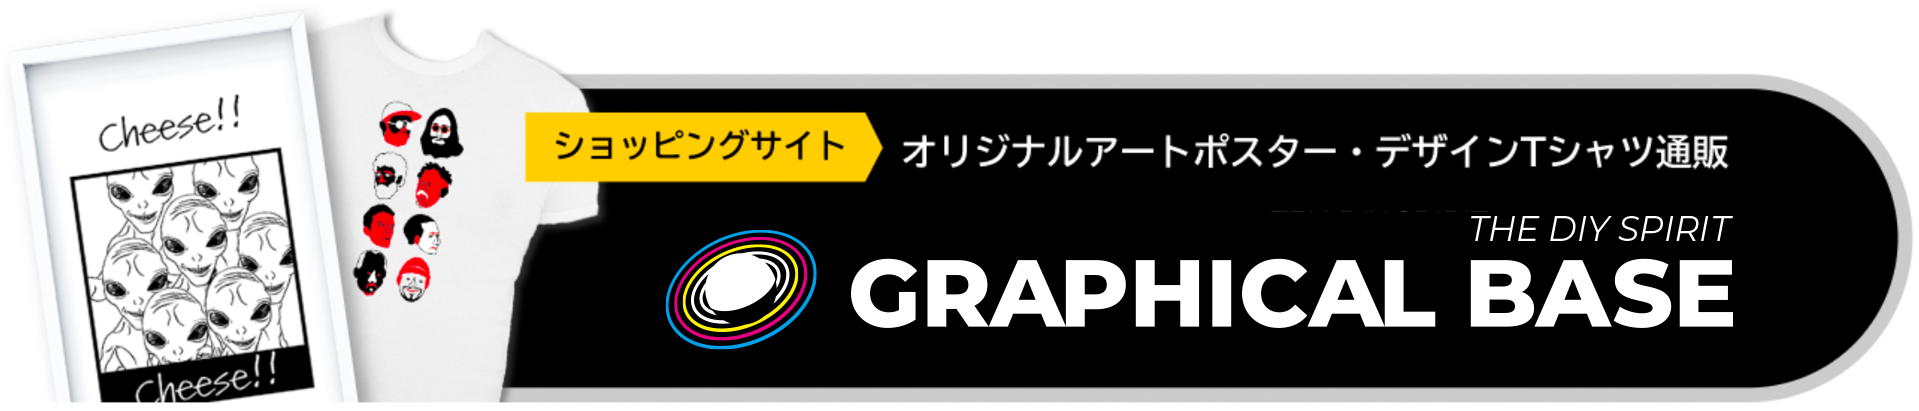 GRAPHICAL BASE